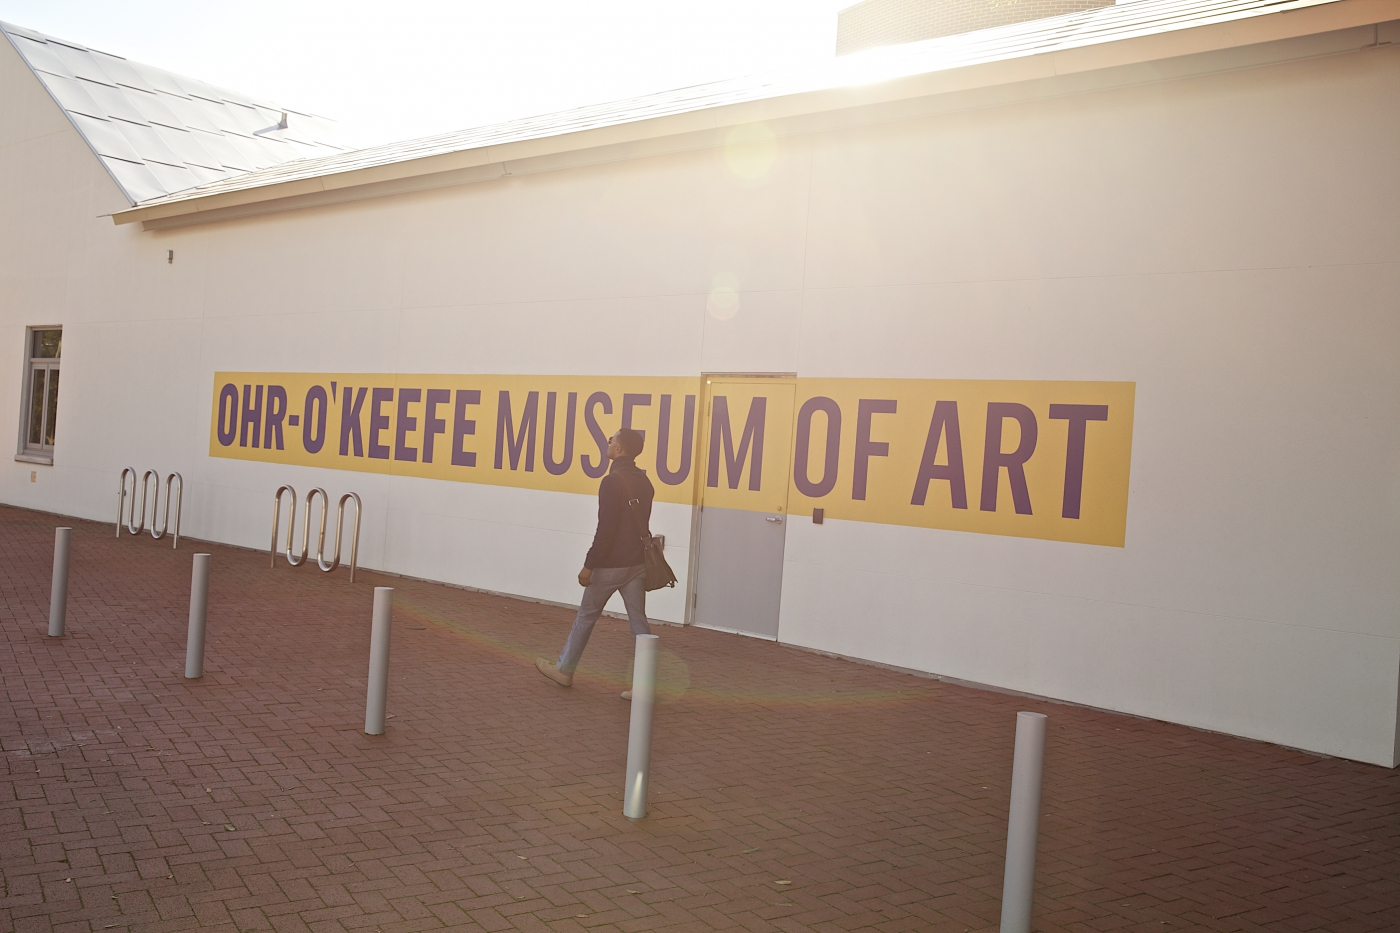 The Ohr-O'Keefe Museum of Art is a unique place to visit with amazing art, one-of-a-kind architecture, and rich history.